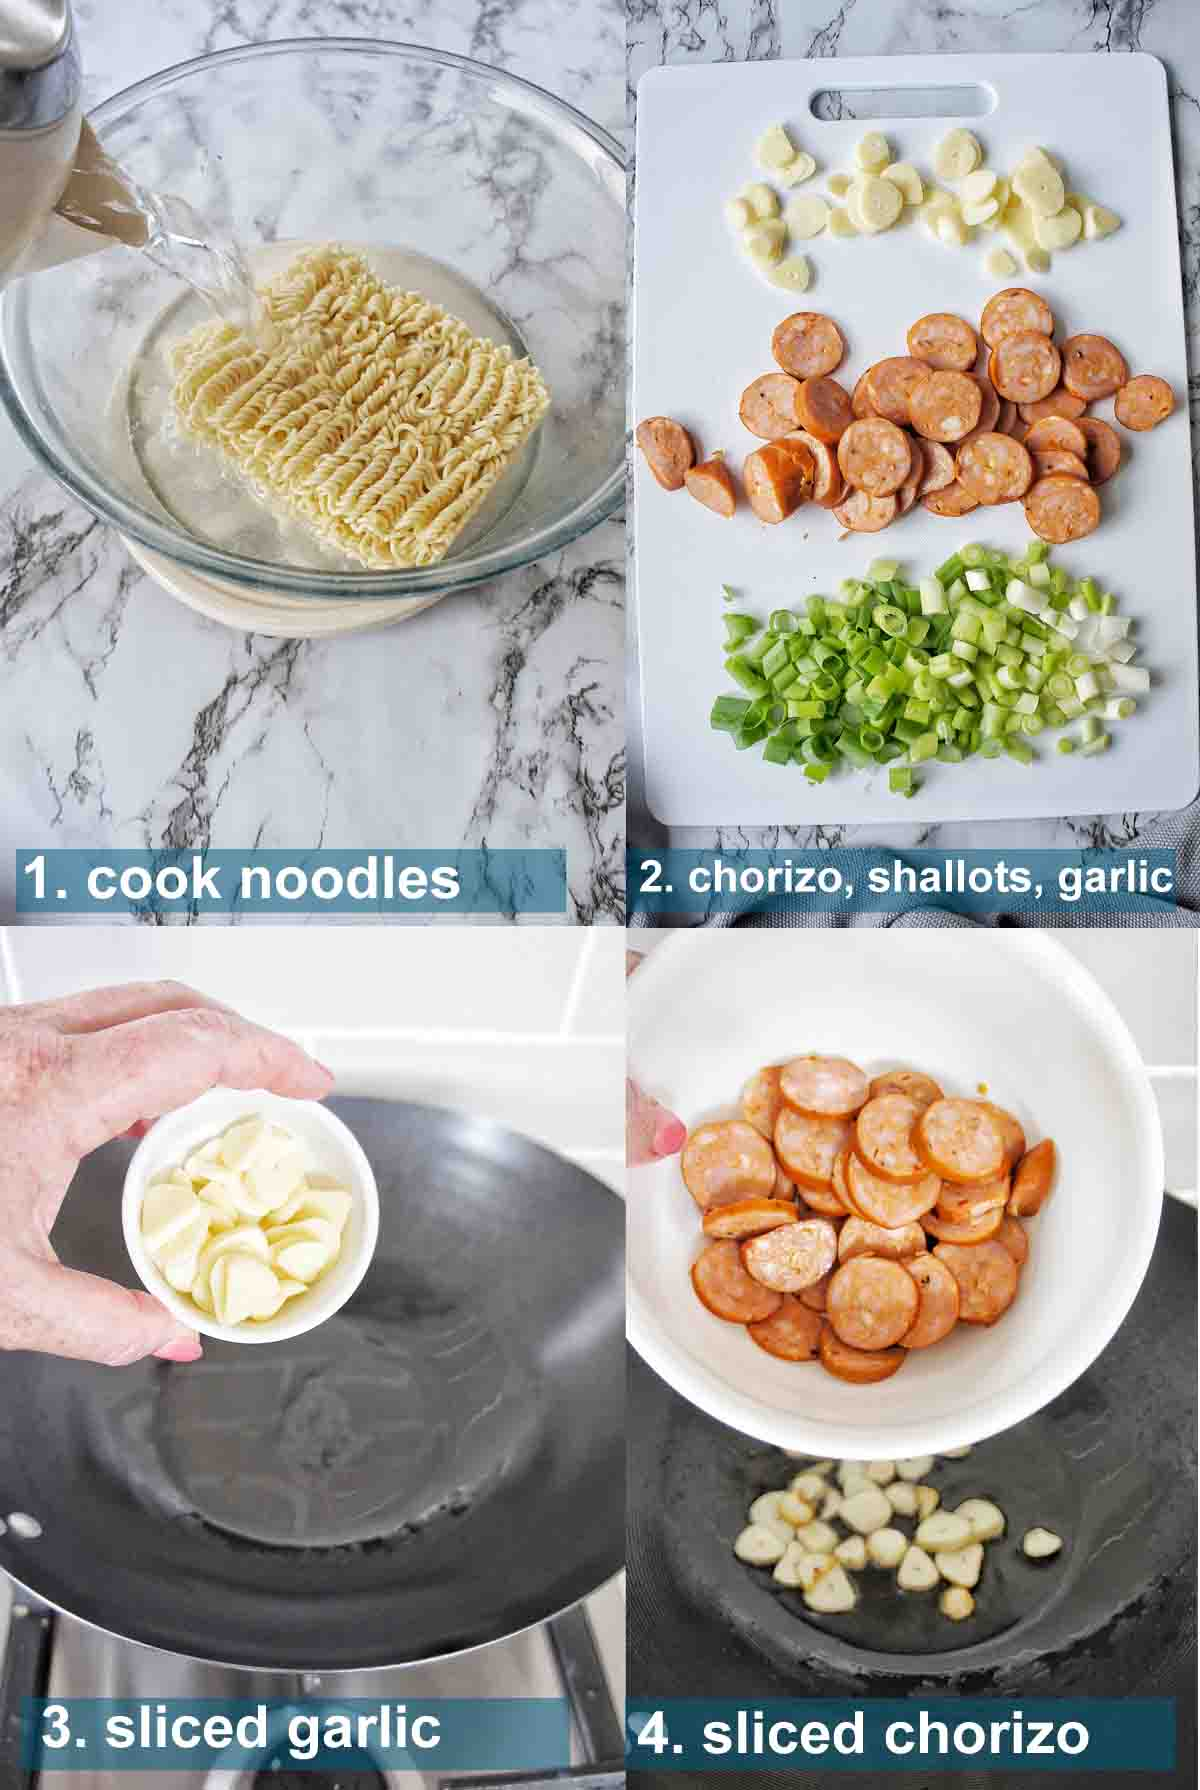 Chorizo Noodles method with text labels 1 to 4